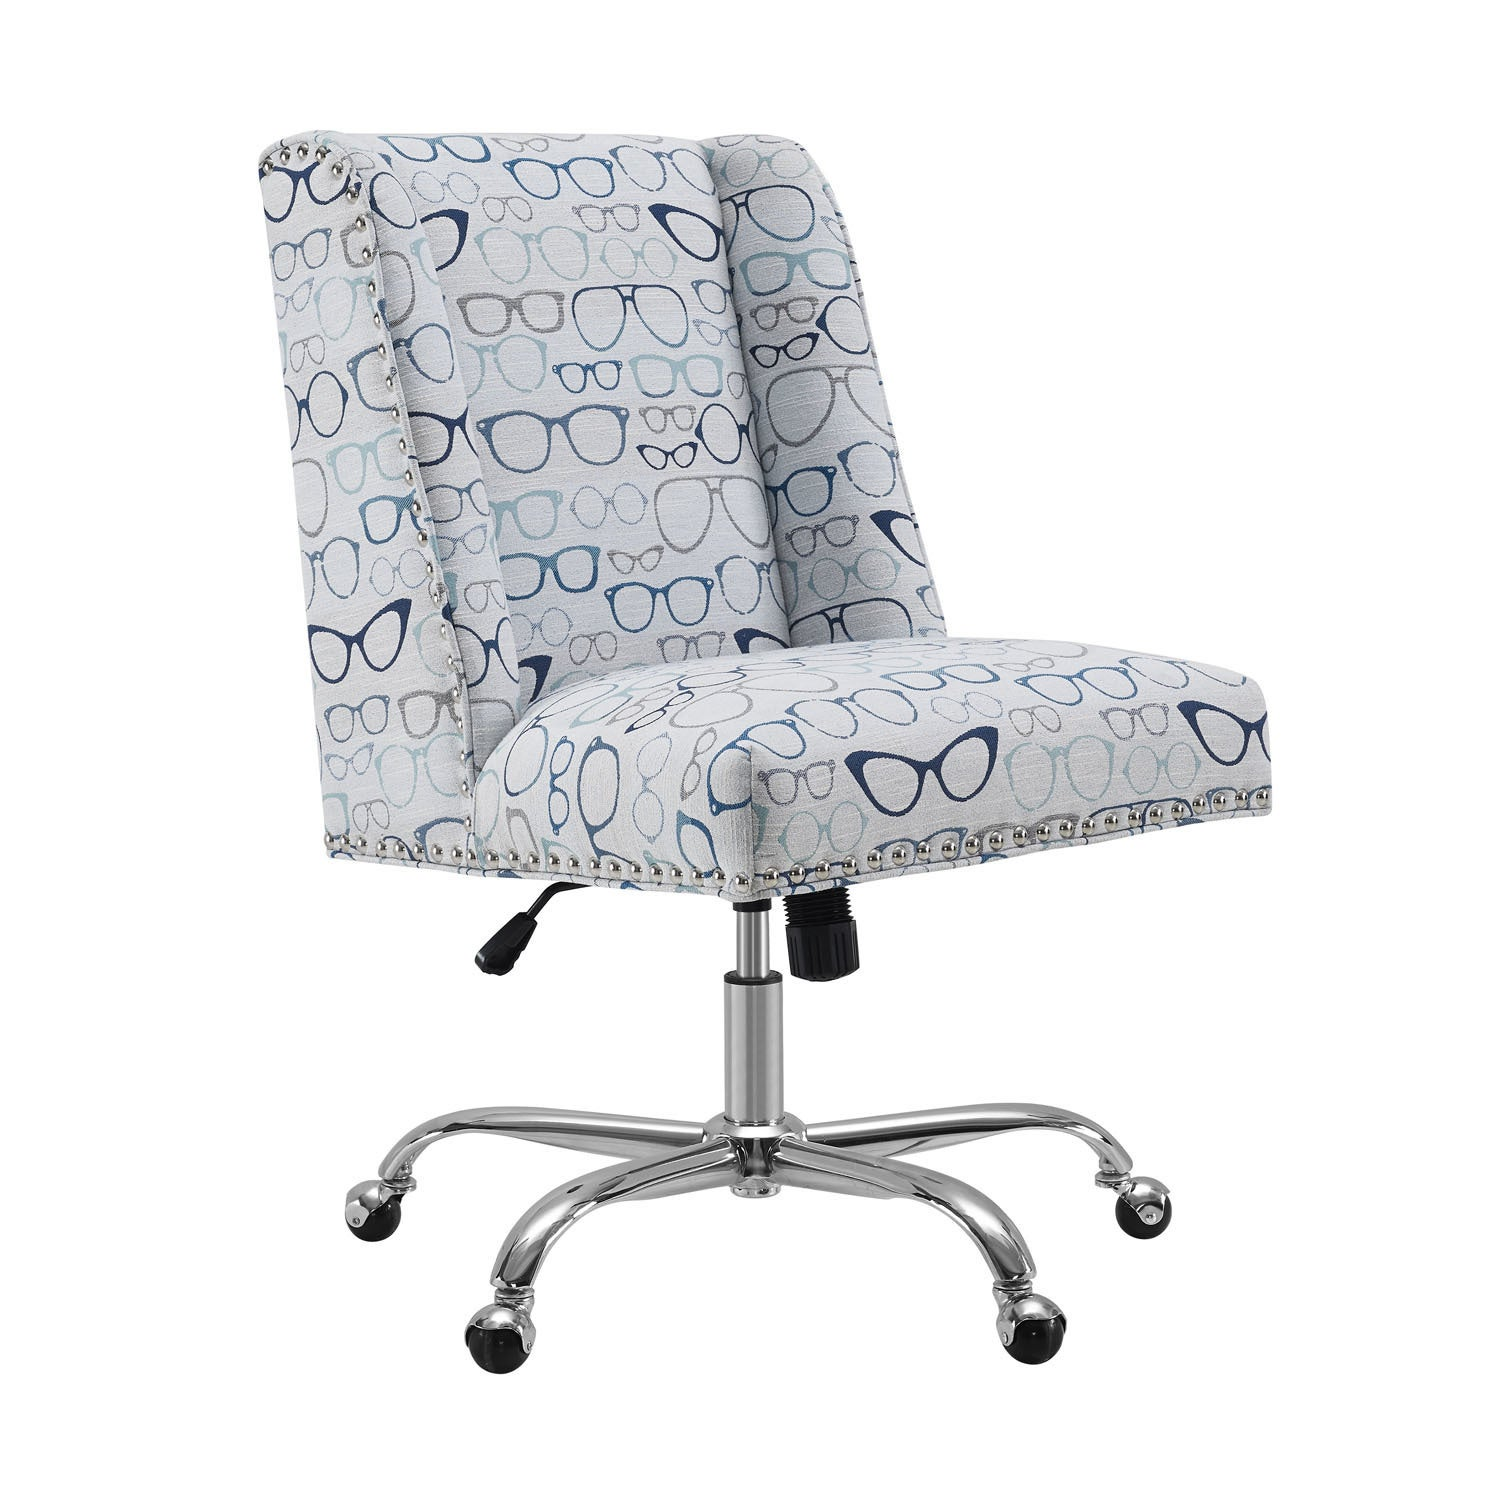 Shop finn glasses office chair free shipping today overstock com 17978456